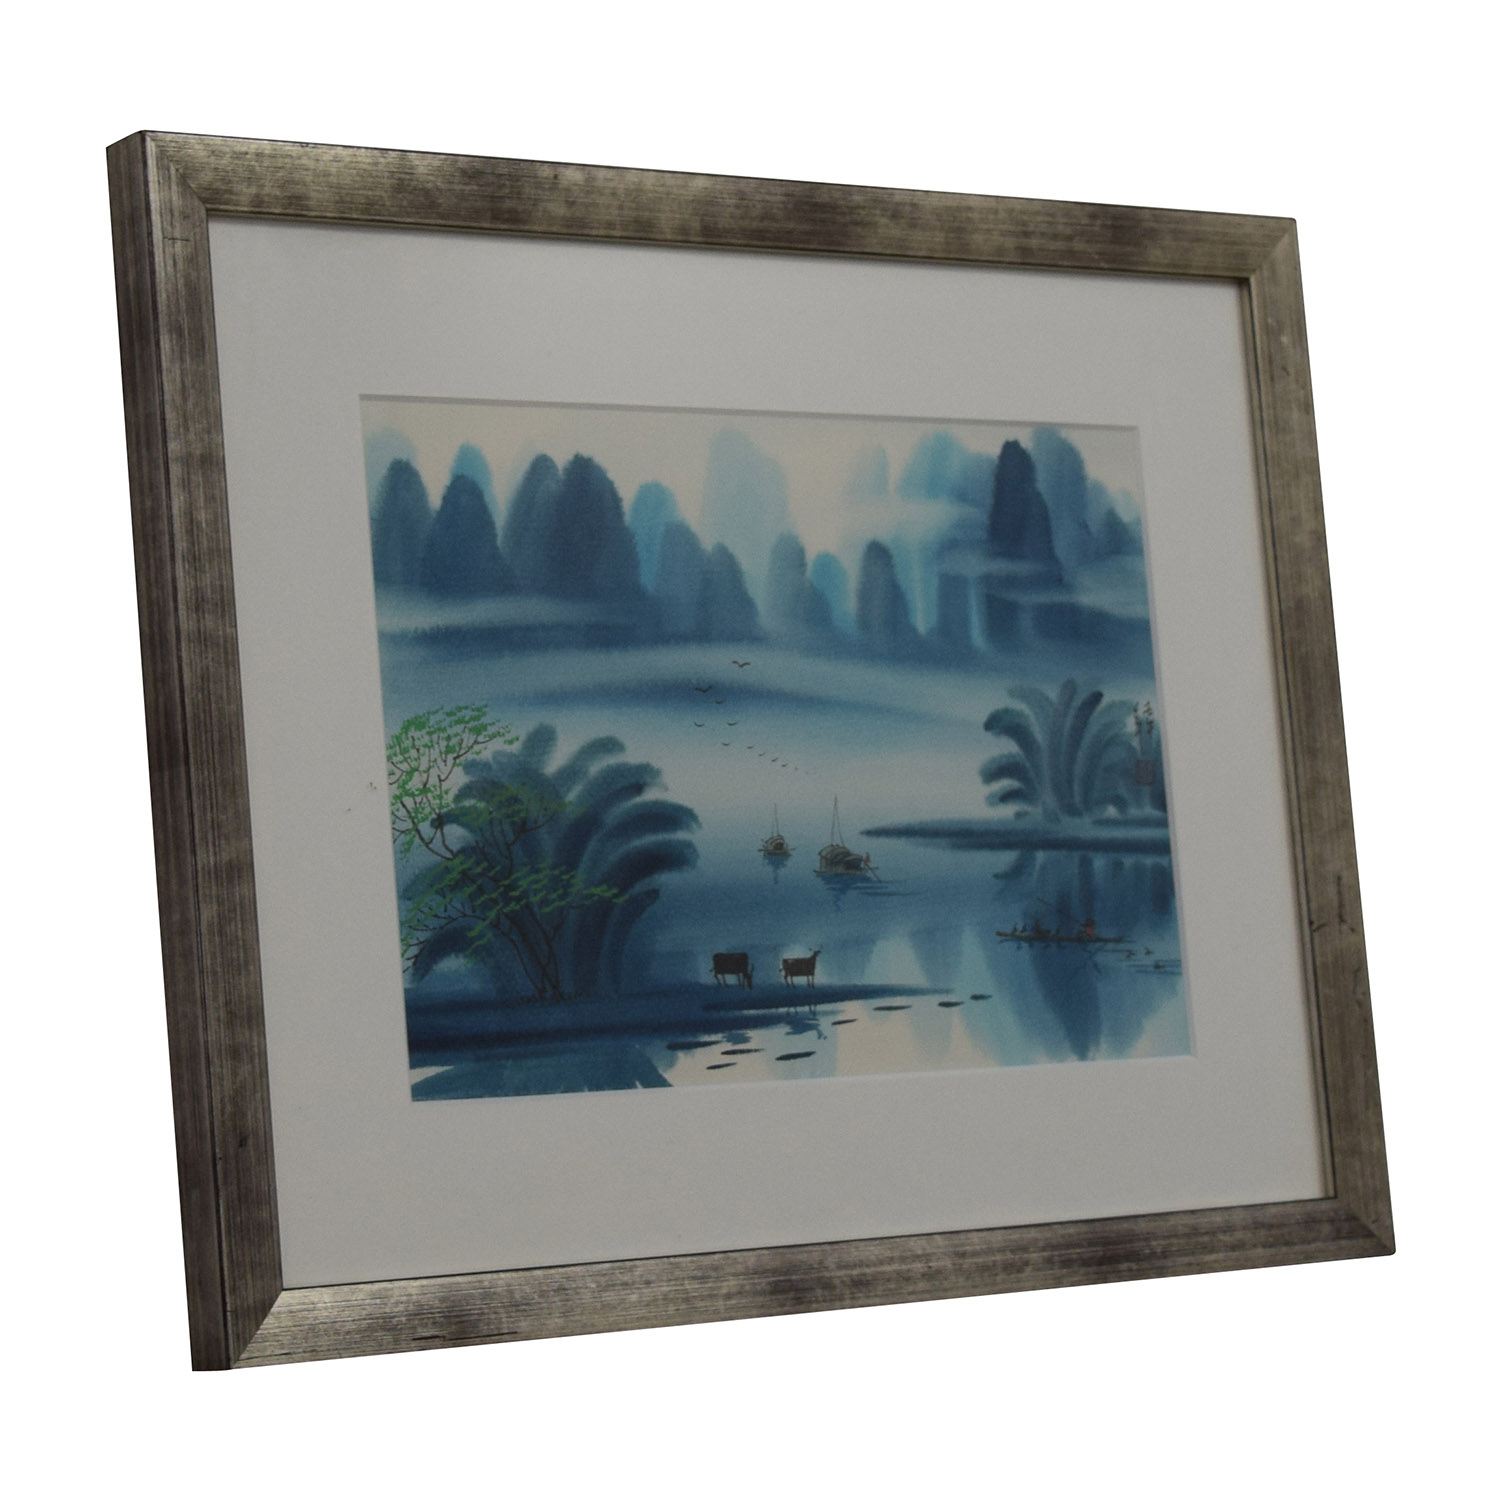 buy Original Chinese Watercolor Landscape Blue Days with Cows Wall Art